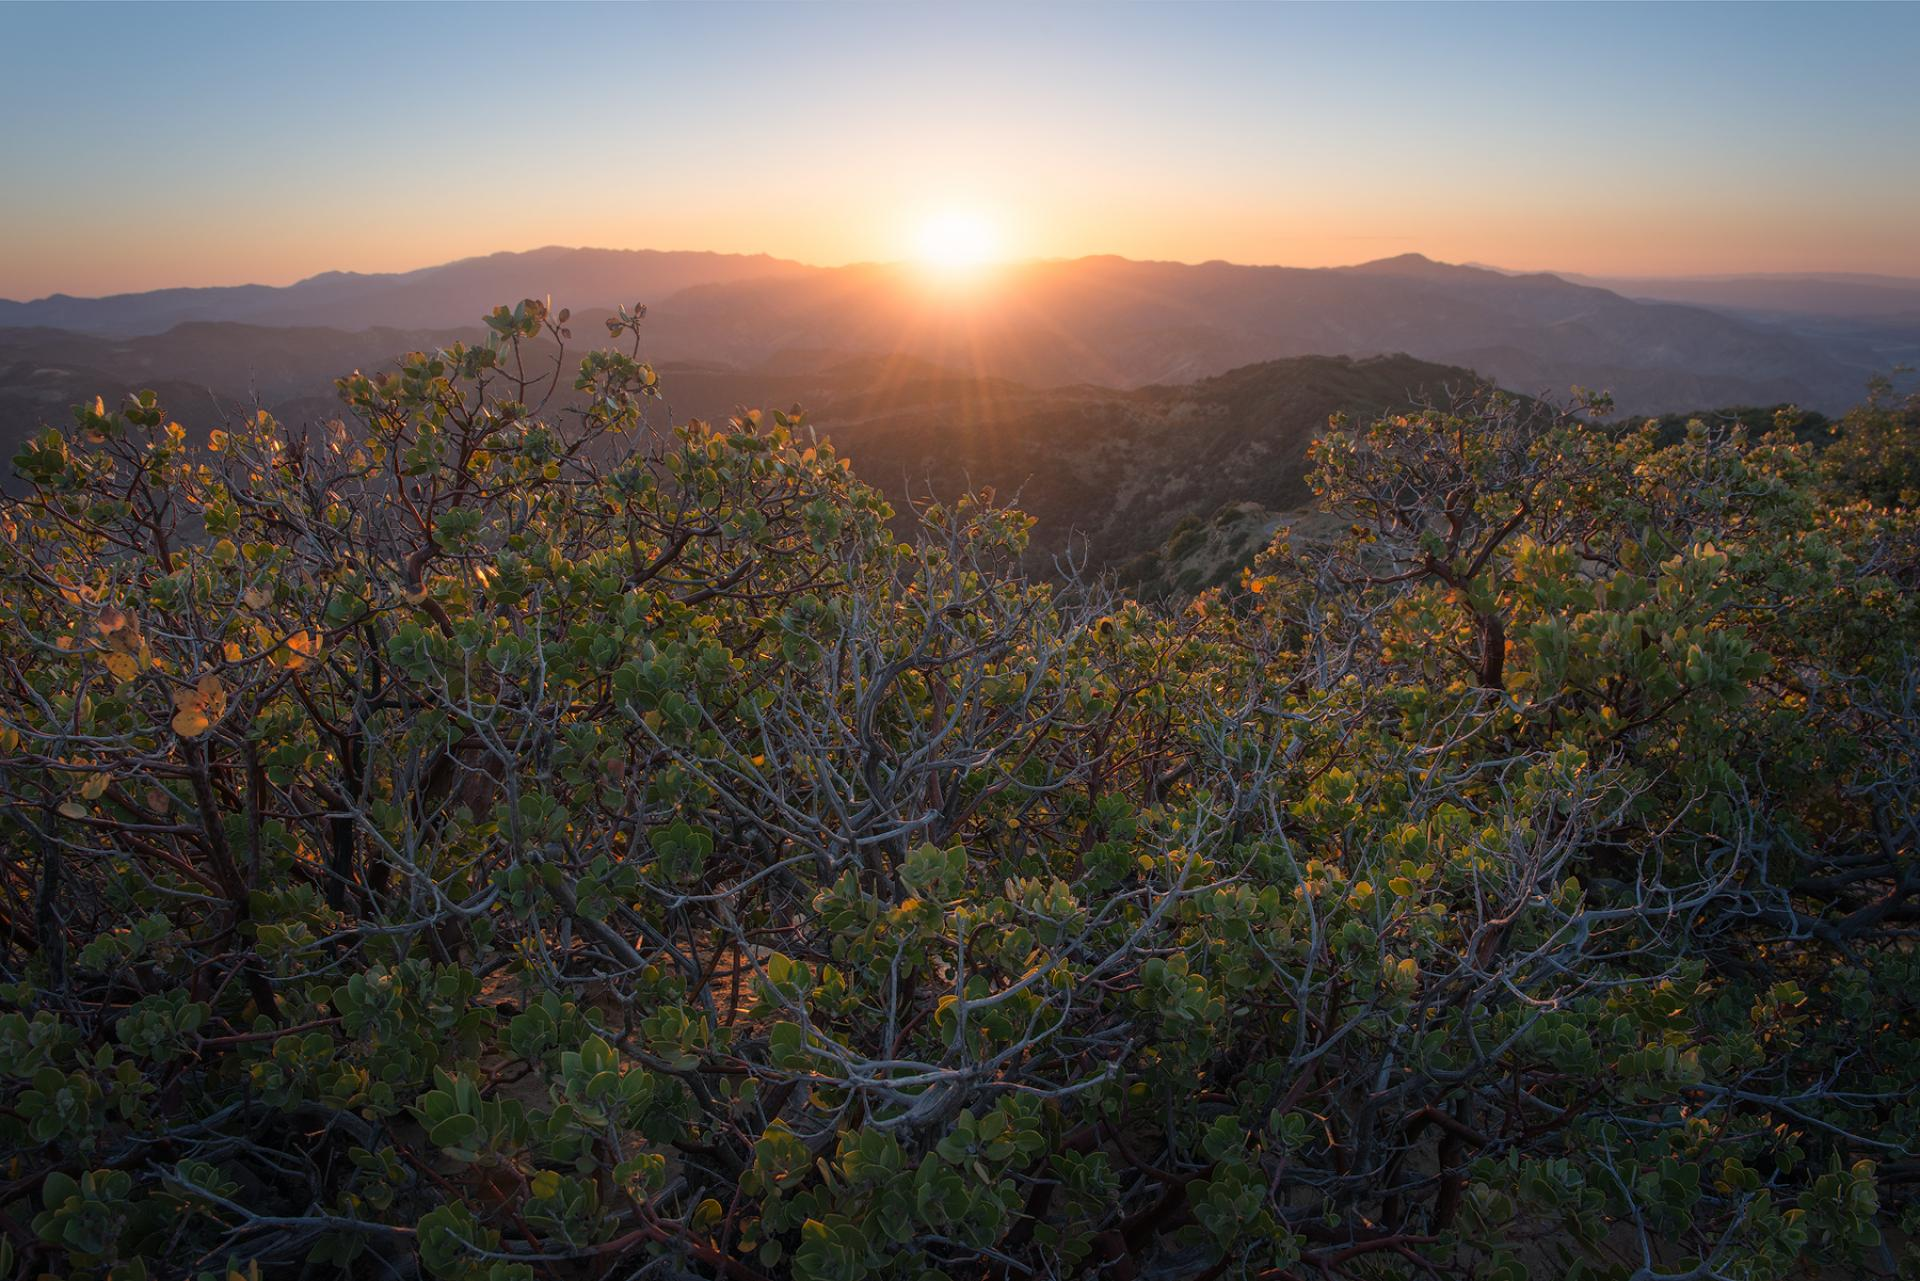 Los Padres National Forest, California.